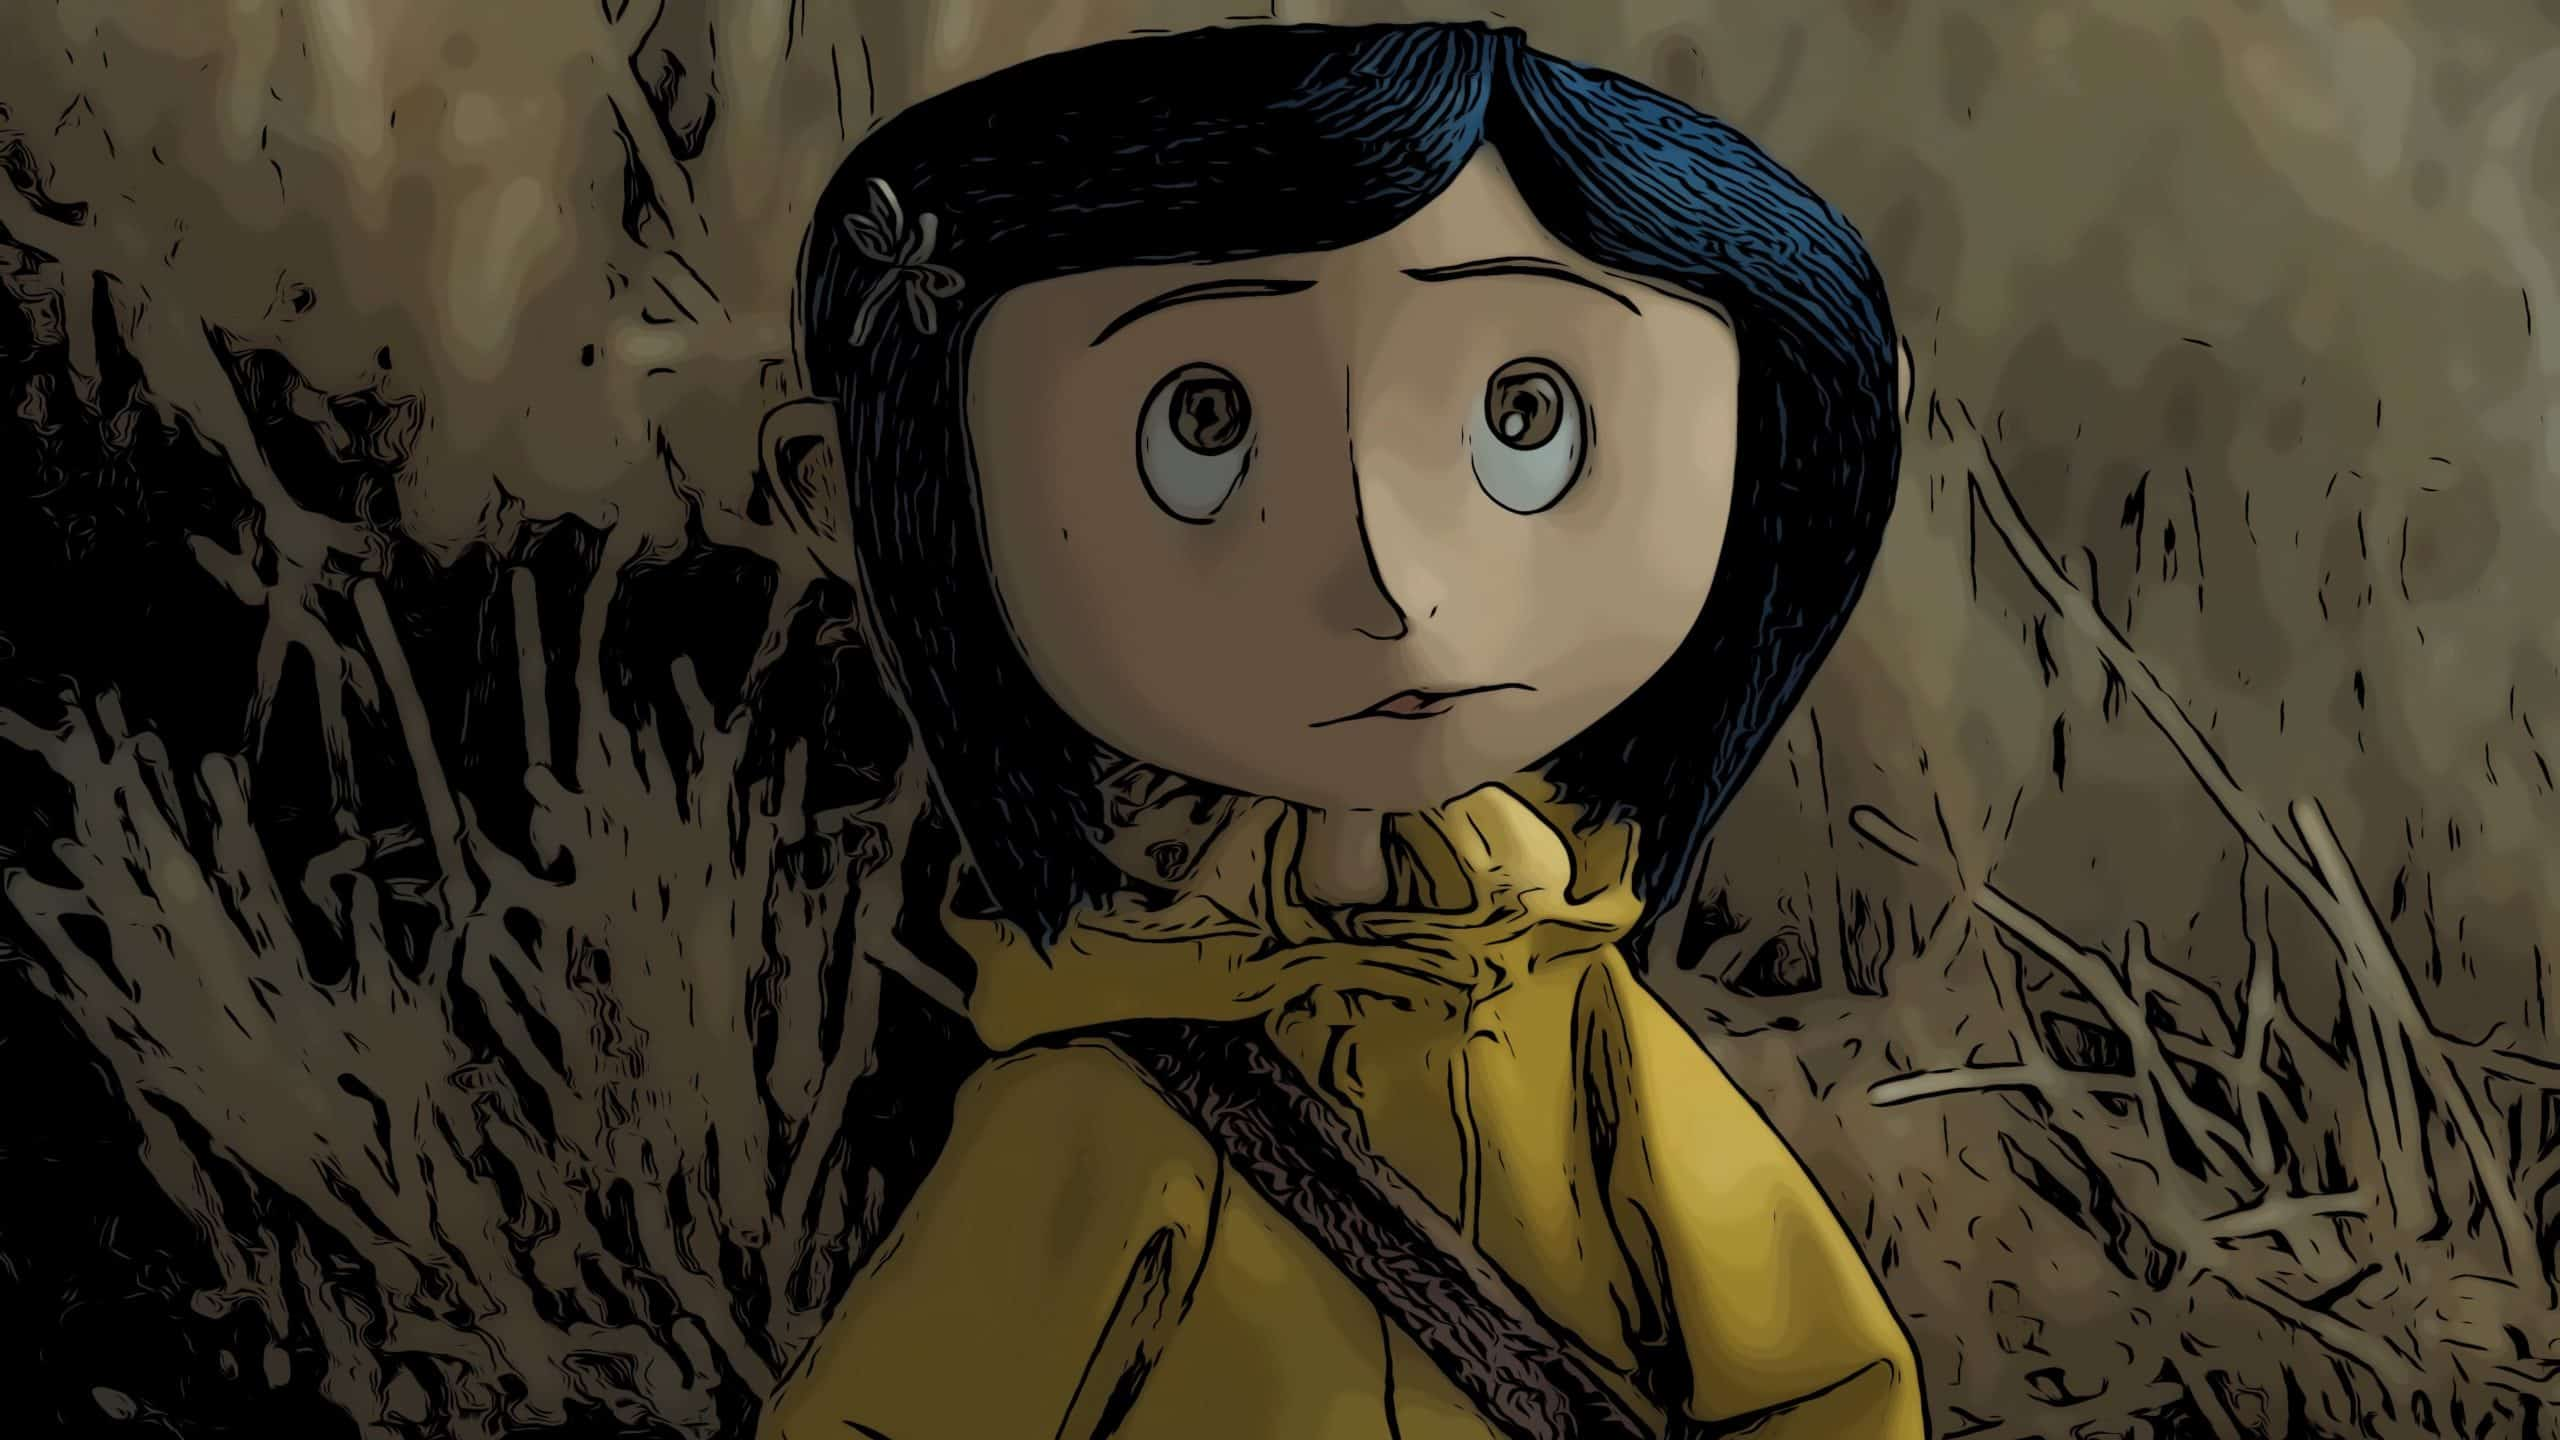 Scene from Coraline for animated horror movies post.